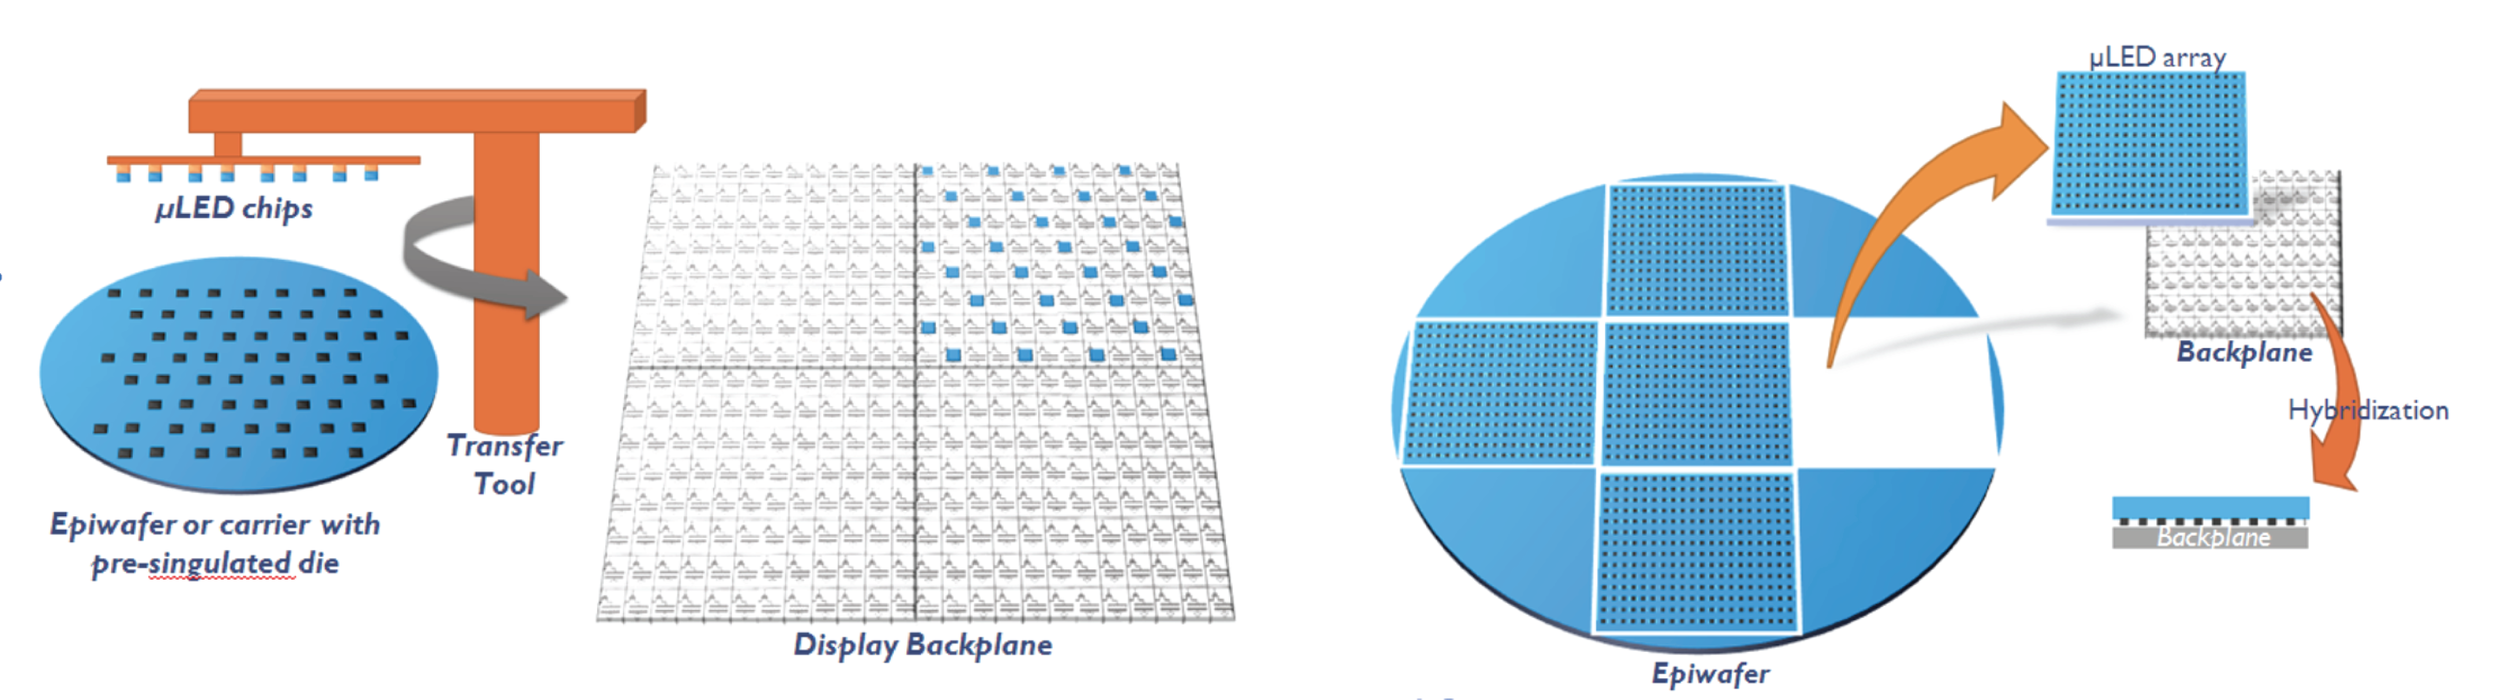 Heterogeneous Integration (Left) and Monolithic Integration (Right) - Images Courtesy of Yole Développment